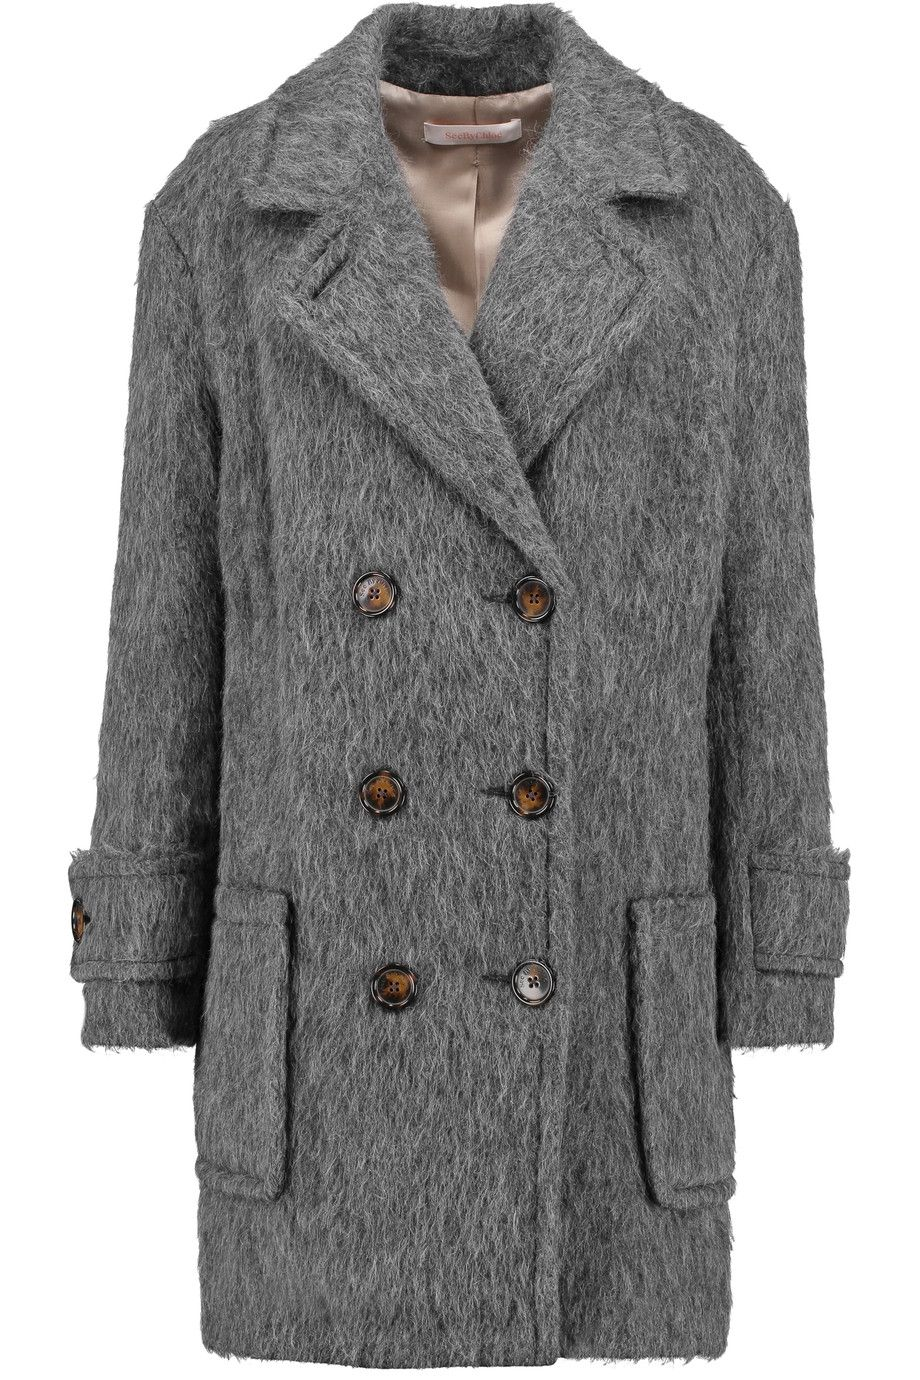 6c35dc596bb9e SEE BY CHLOÉ Faux shearling coat. #seebychloé #cloth #coat | See By ...